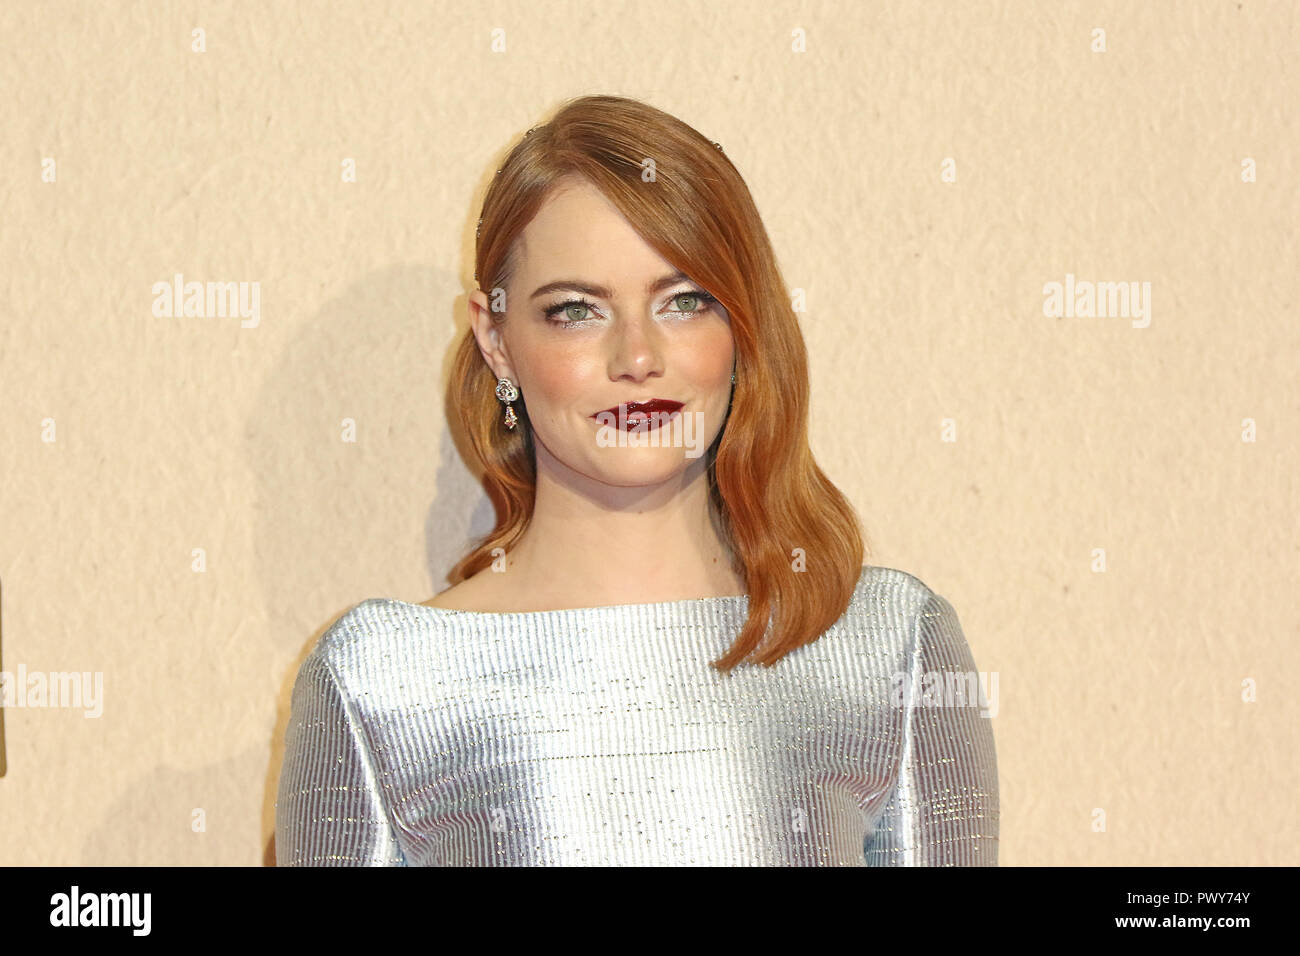 London, UK. 18th October, 2018. Emma Stone, The Favourite - UK Premiere, BFI London Film Festival, BFI Southbank, London, UK, 18 October 2018, Photo by Richard Goldschmidt Credit: Rich Gold/Alamy Live News - Stock Image